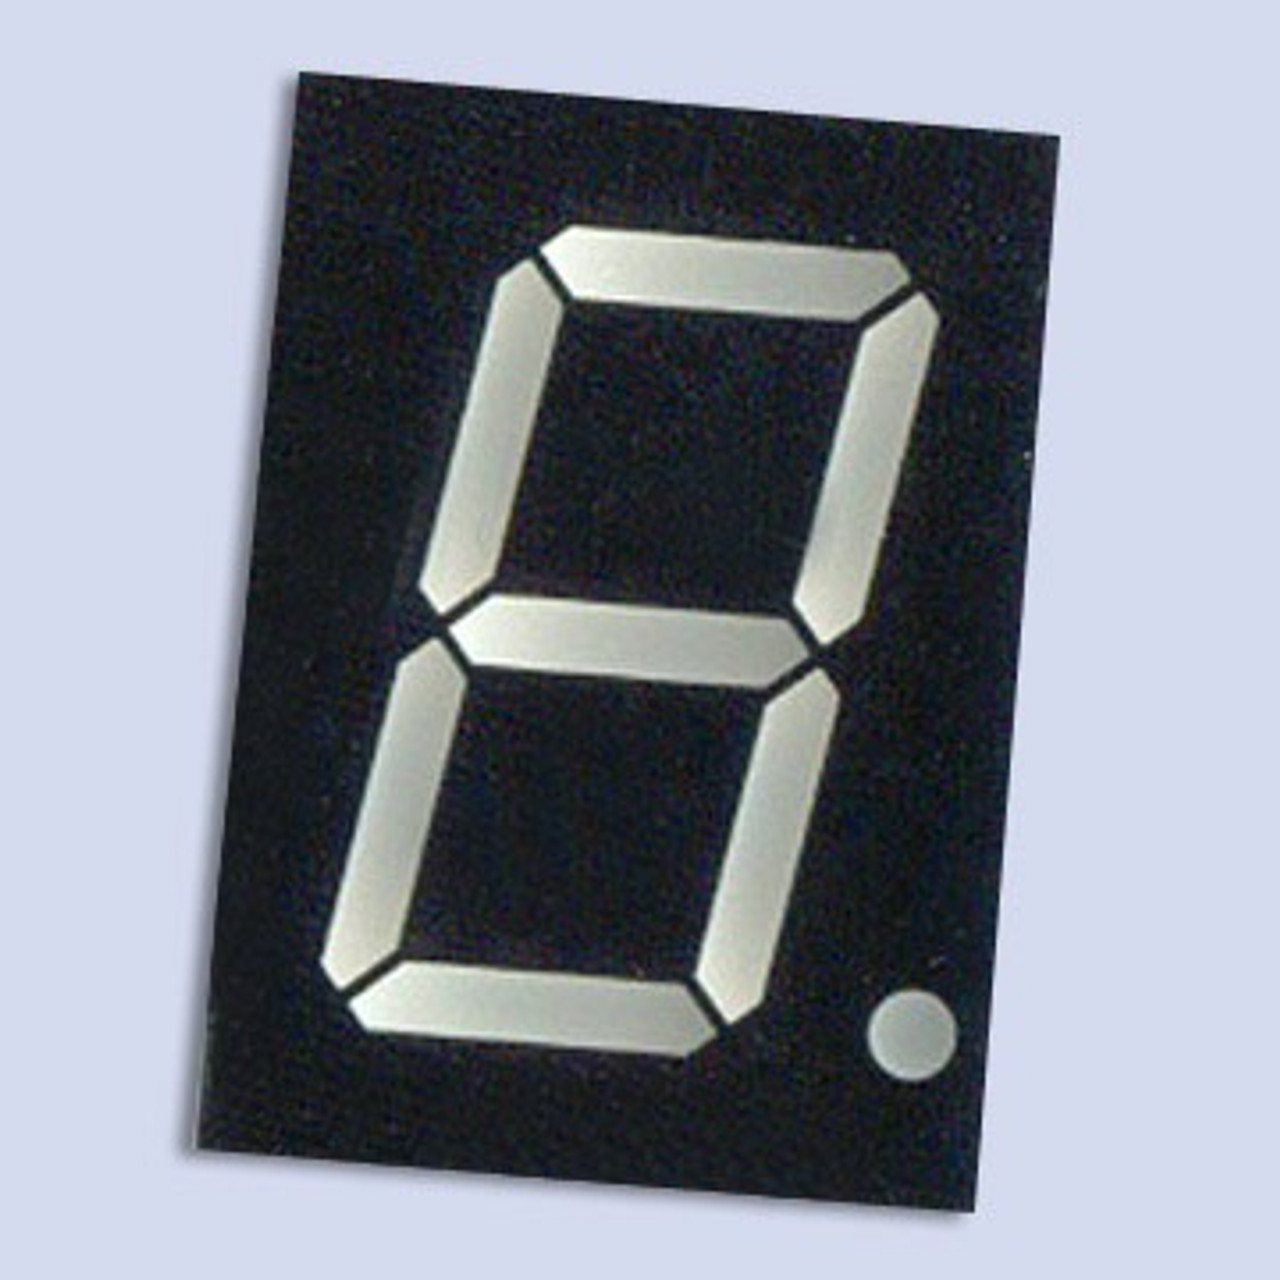 EKL 1D-03A Single Digit LED Display